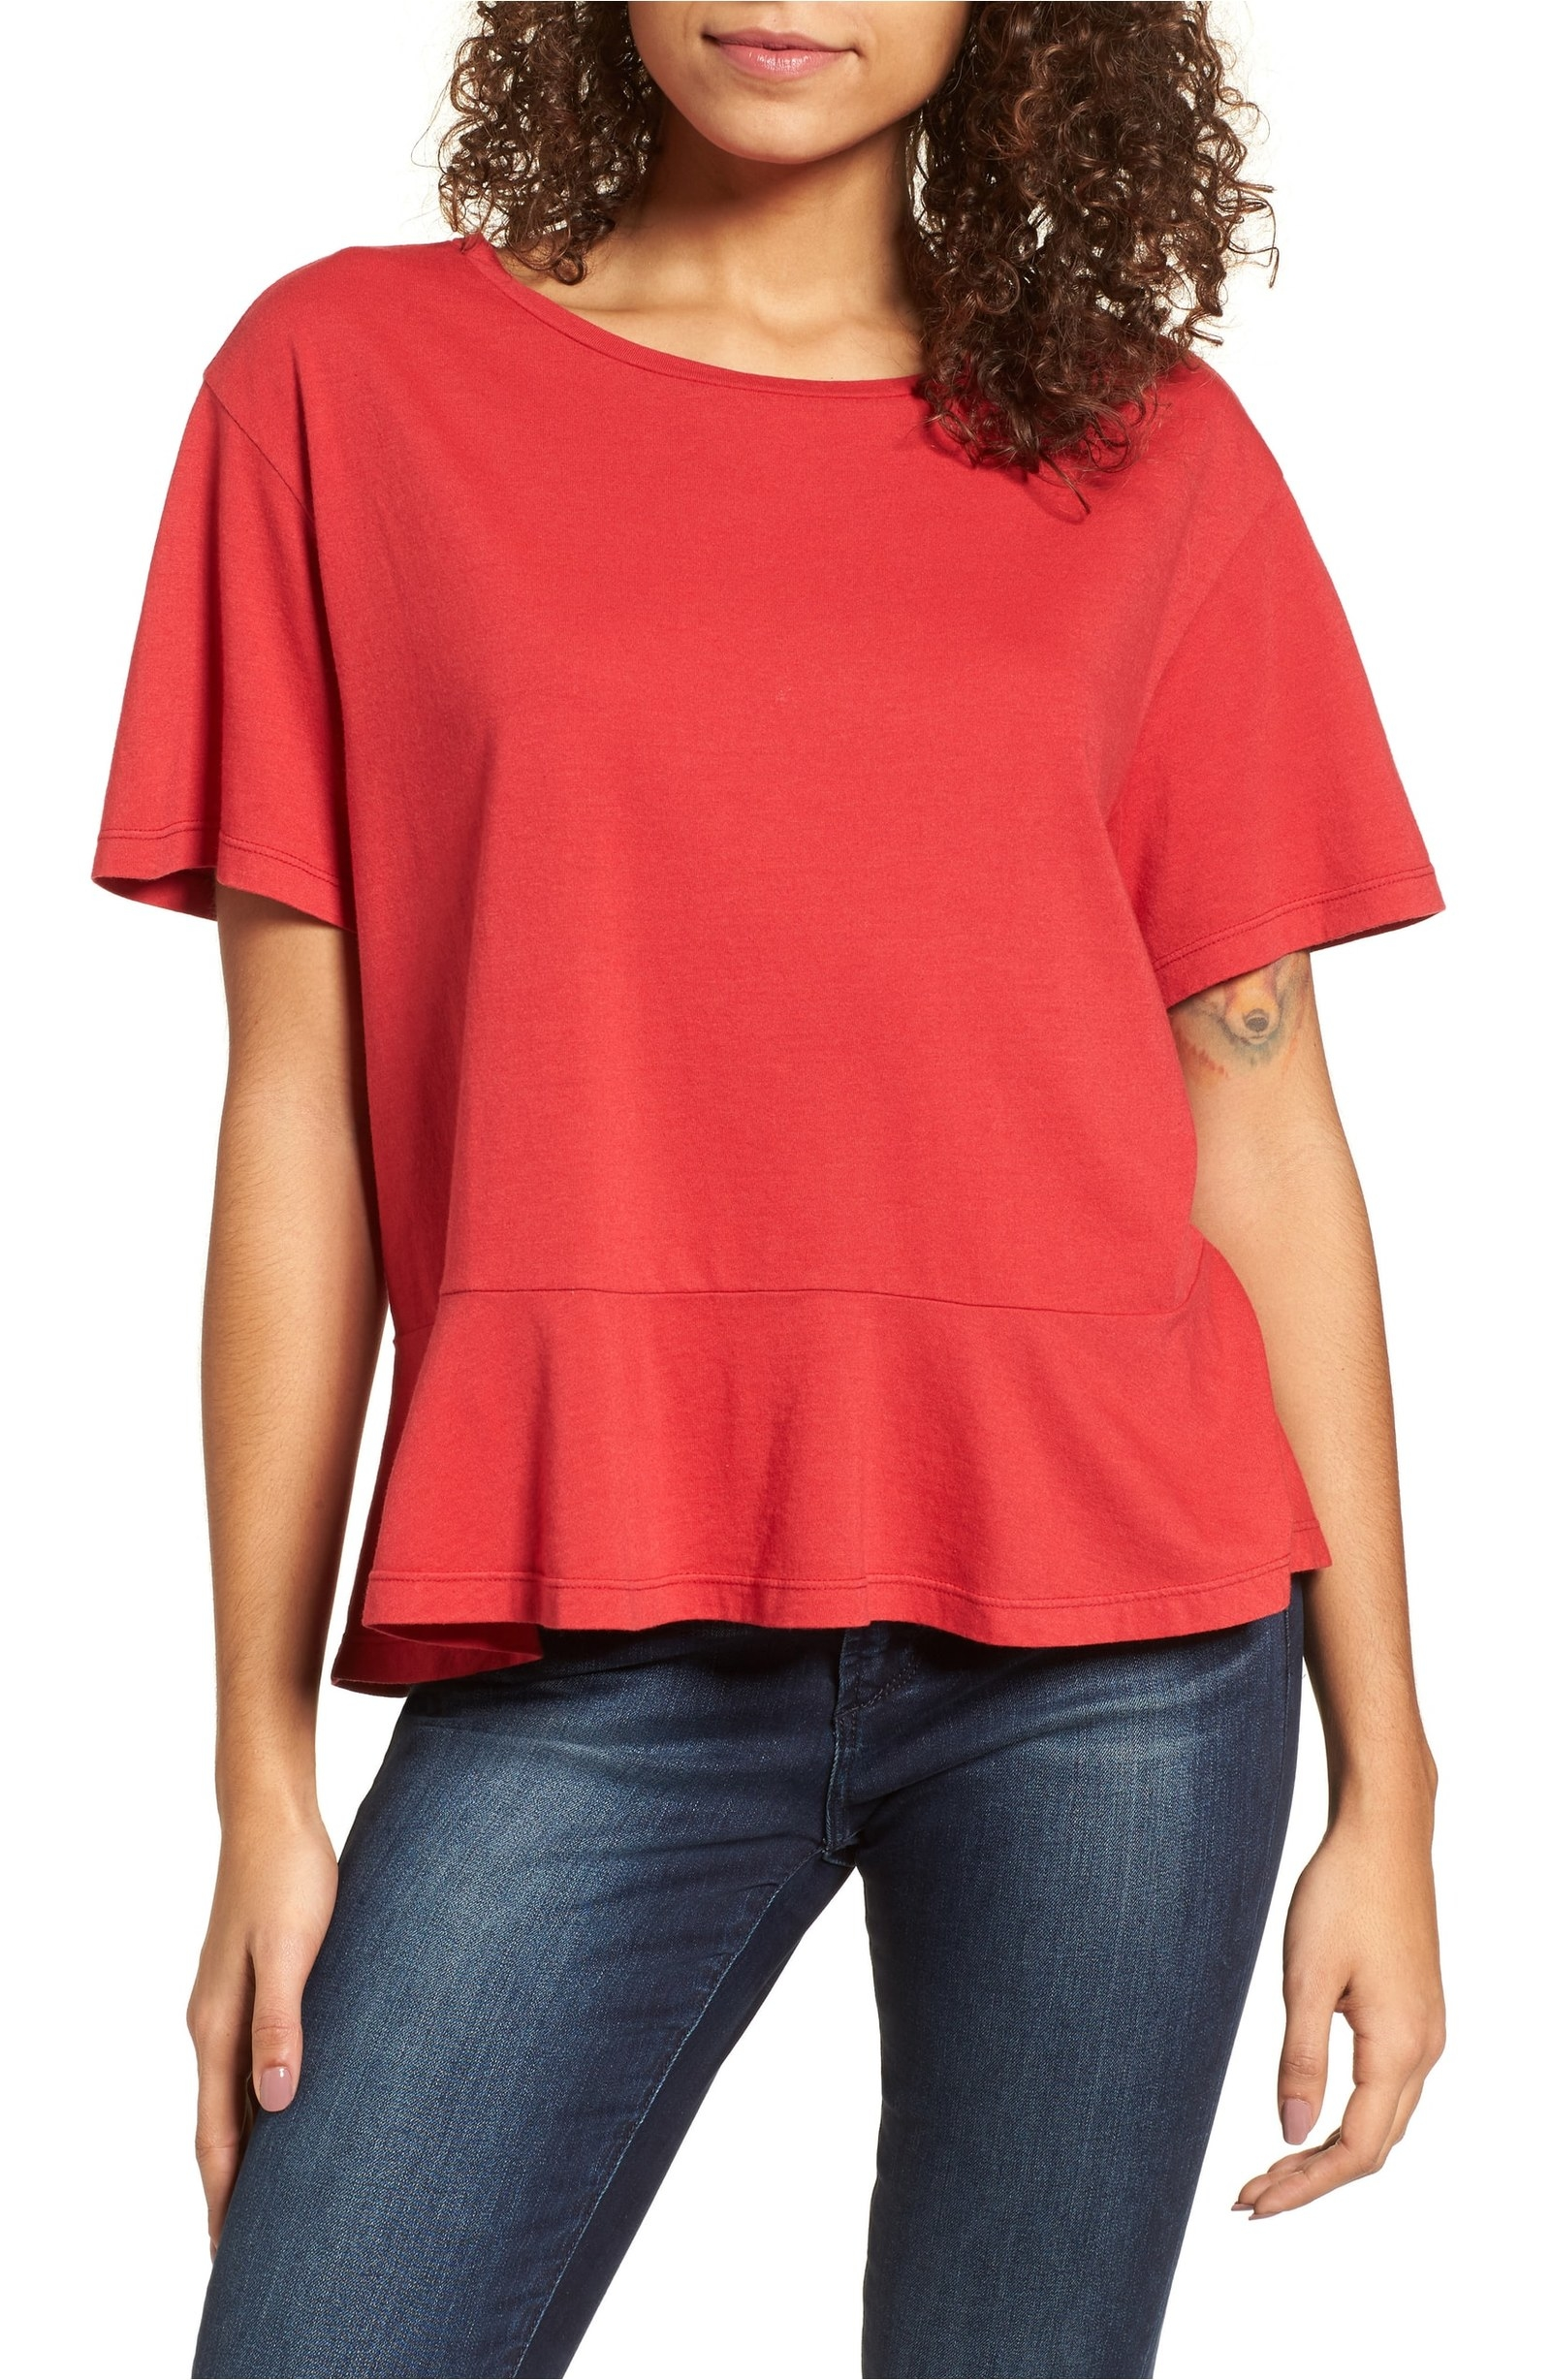 """Promising review: """"This is a very cute tee! It's comfy and slightly loose-fitting. Plus, the fabric is soft and the color is just as pictured."""" —JMoen Price: $9.90 (originally $22, available in sizes XXS-XXL and in six colors)"""